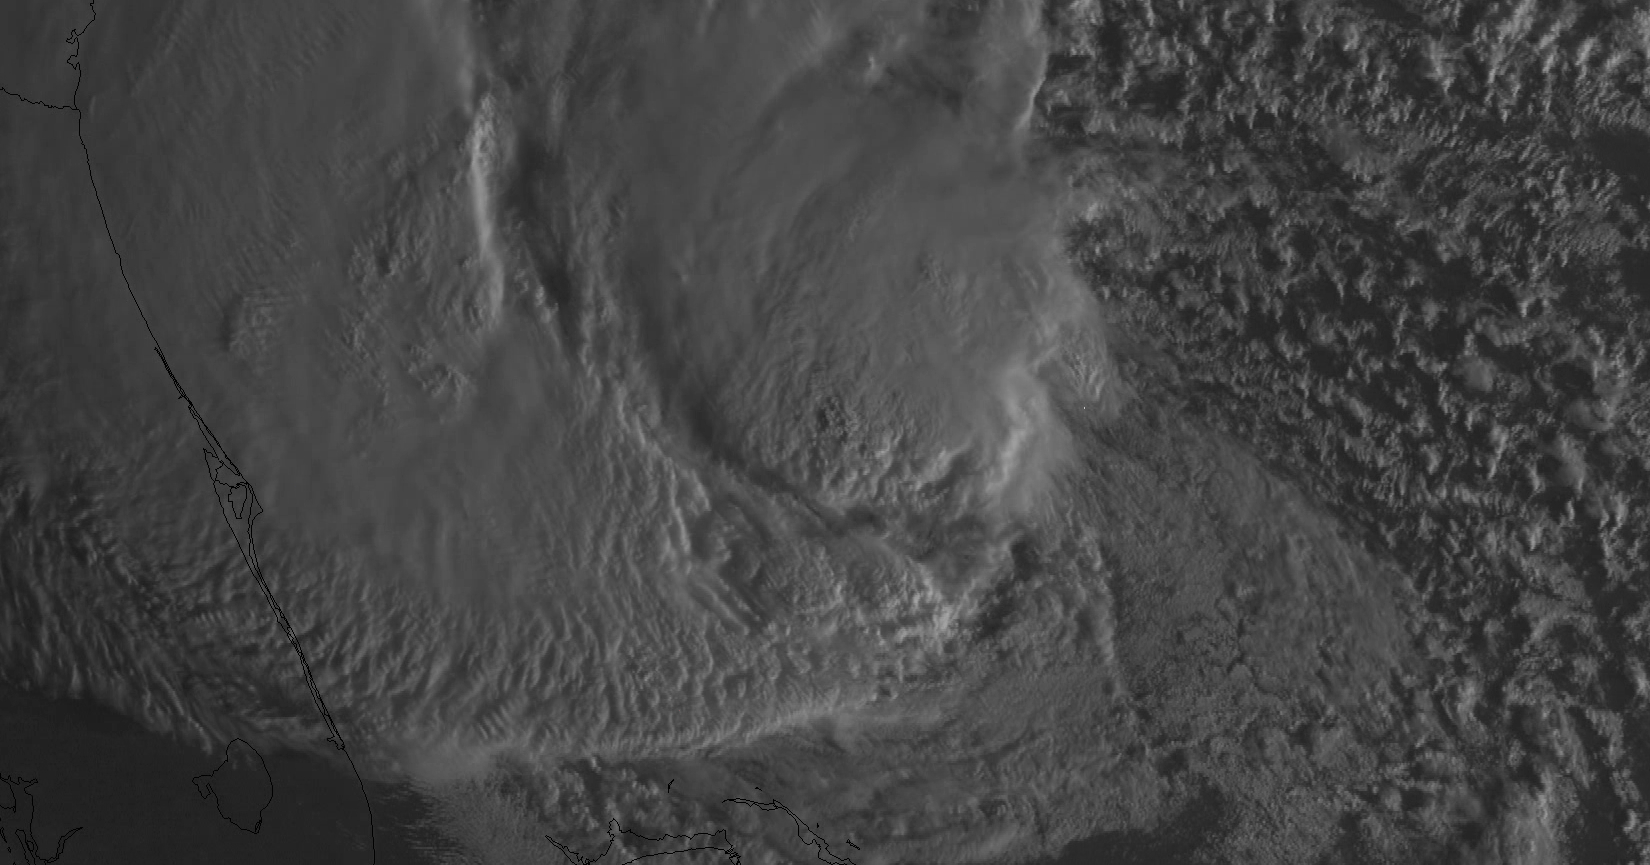 GOES-14 0.63 µm visible channel image (click image to play QuickTime movie)